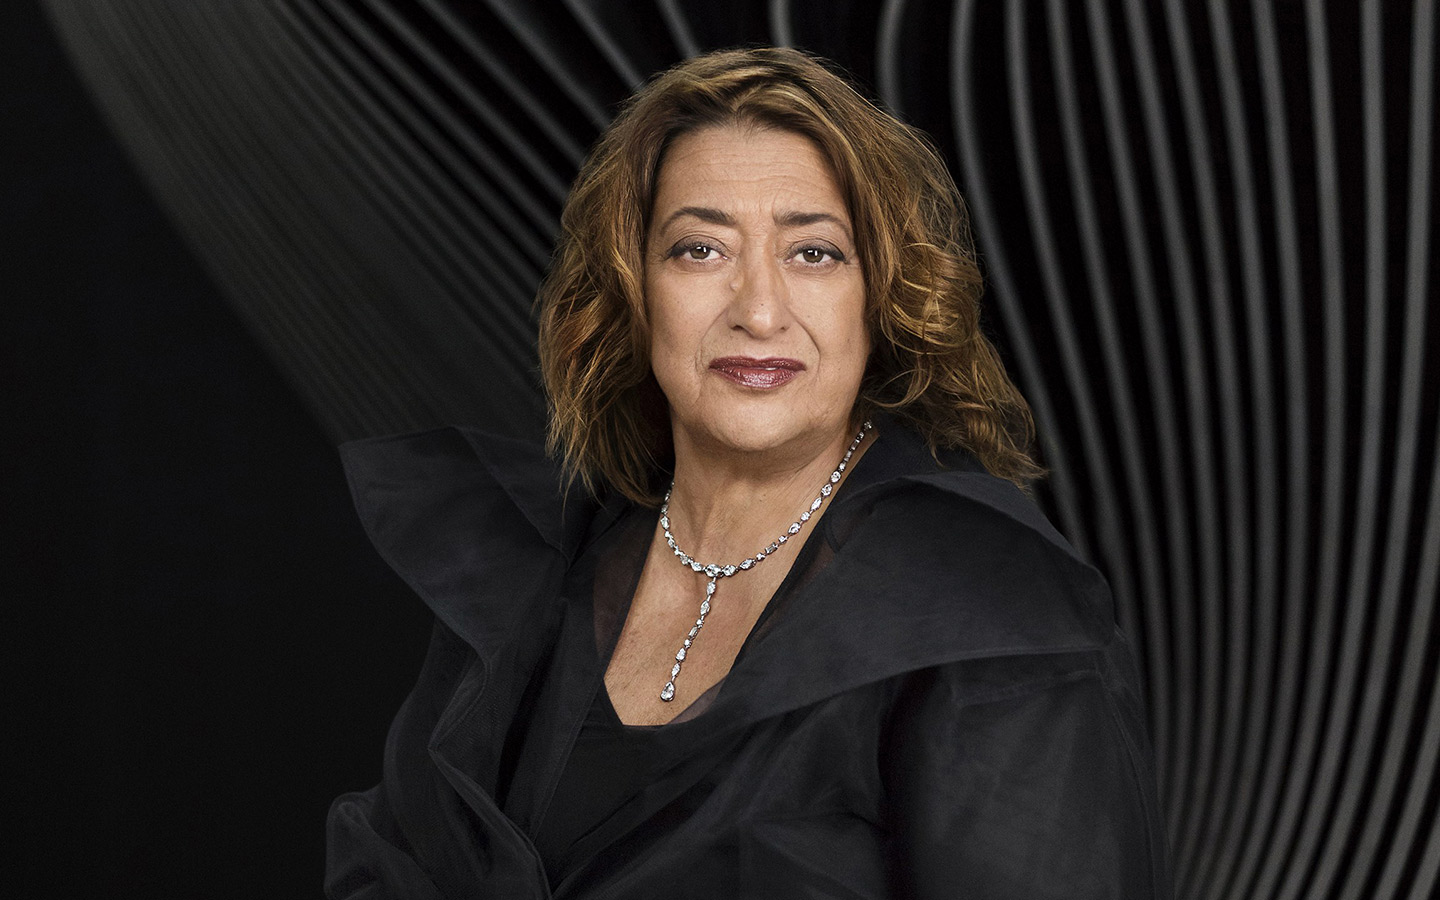 Award-winning architect Zaha Hadid